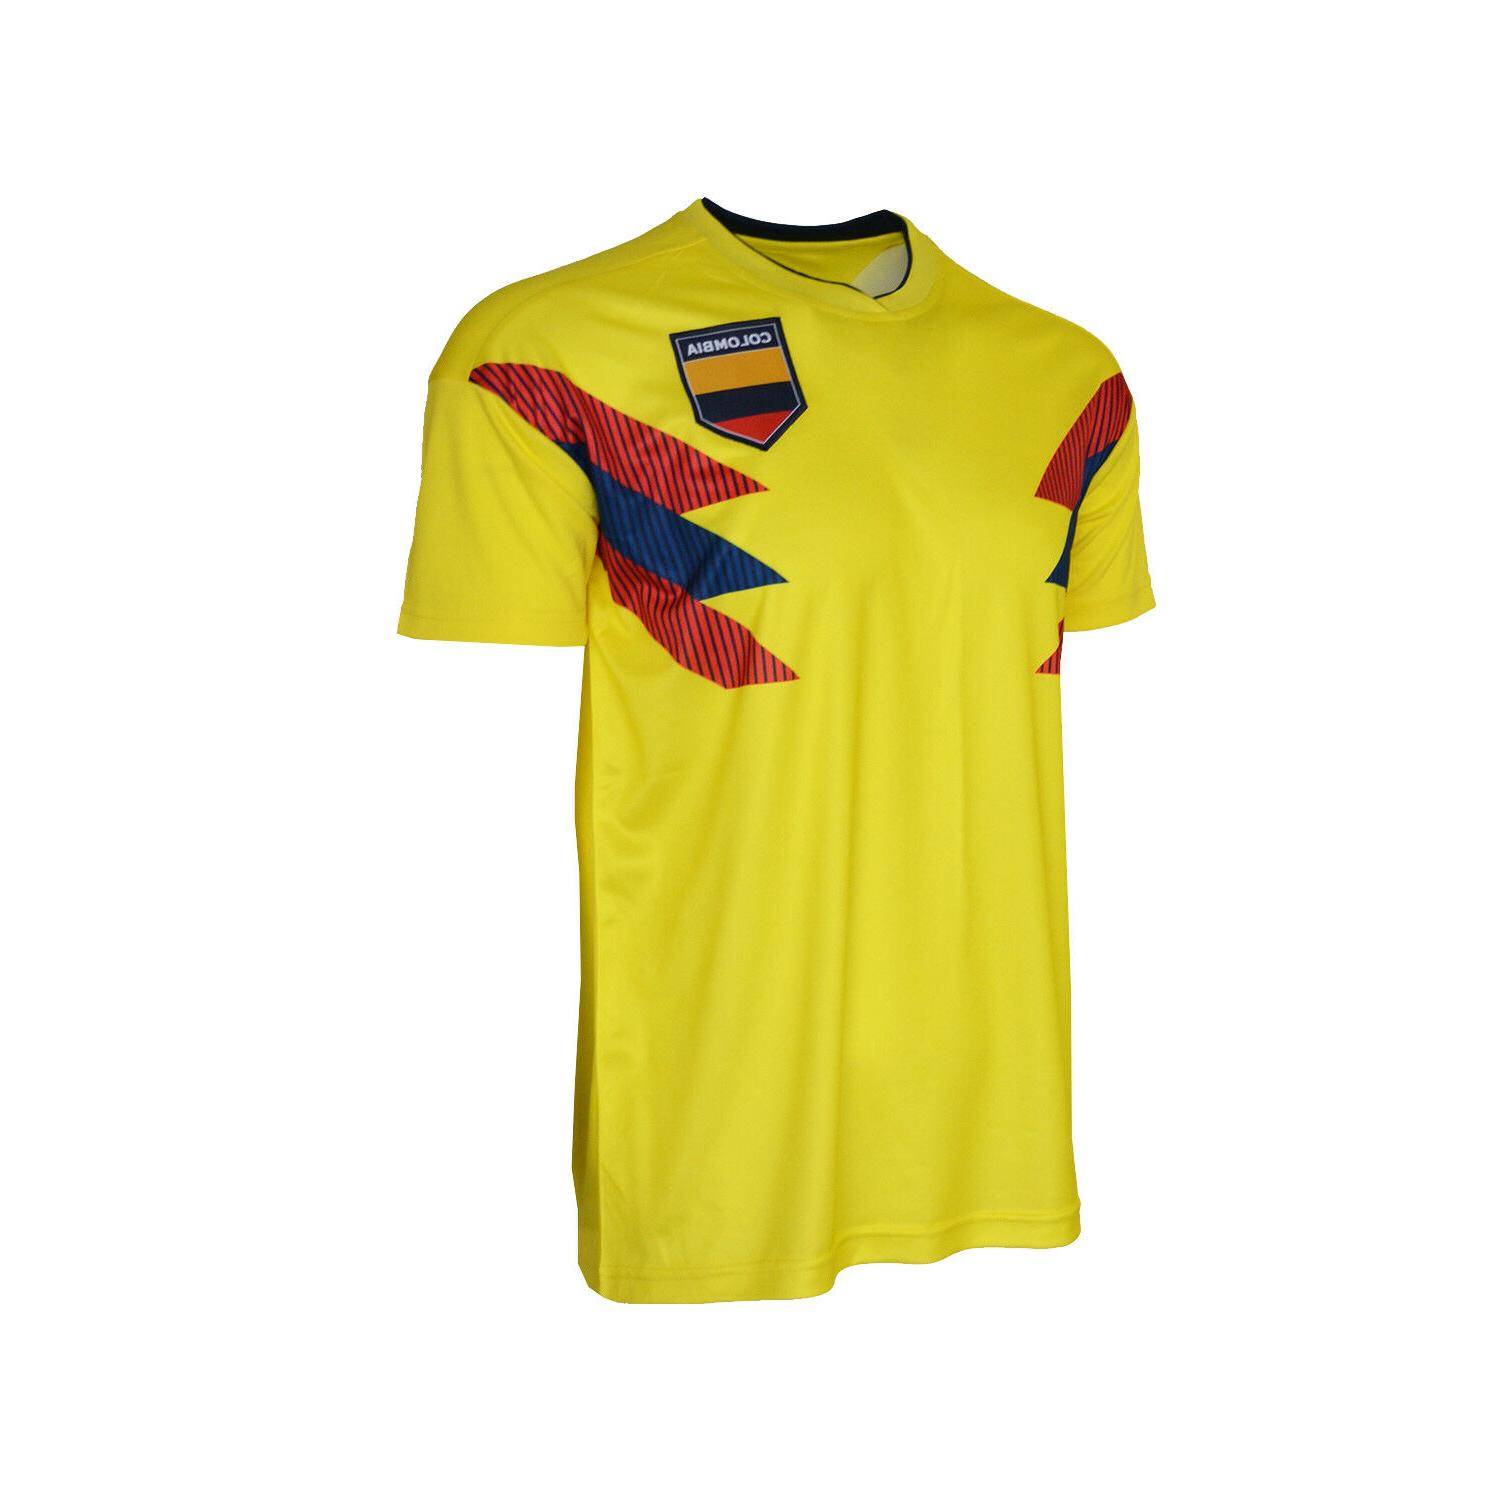 new concept 26d07 ce1a3 Colombia National Team Jersey Patriotic Yellow Flag Shield Pride Sports  Soccer